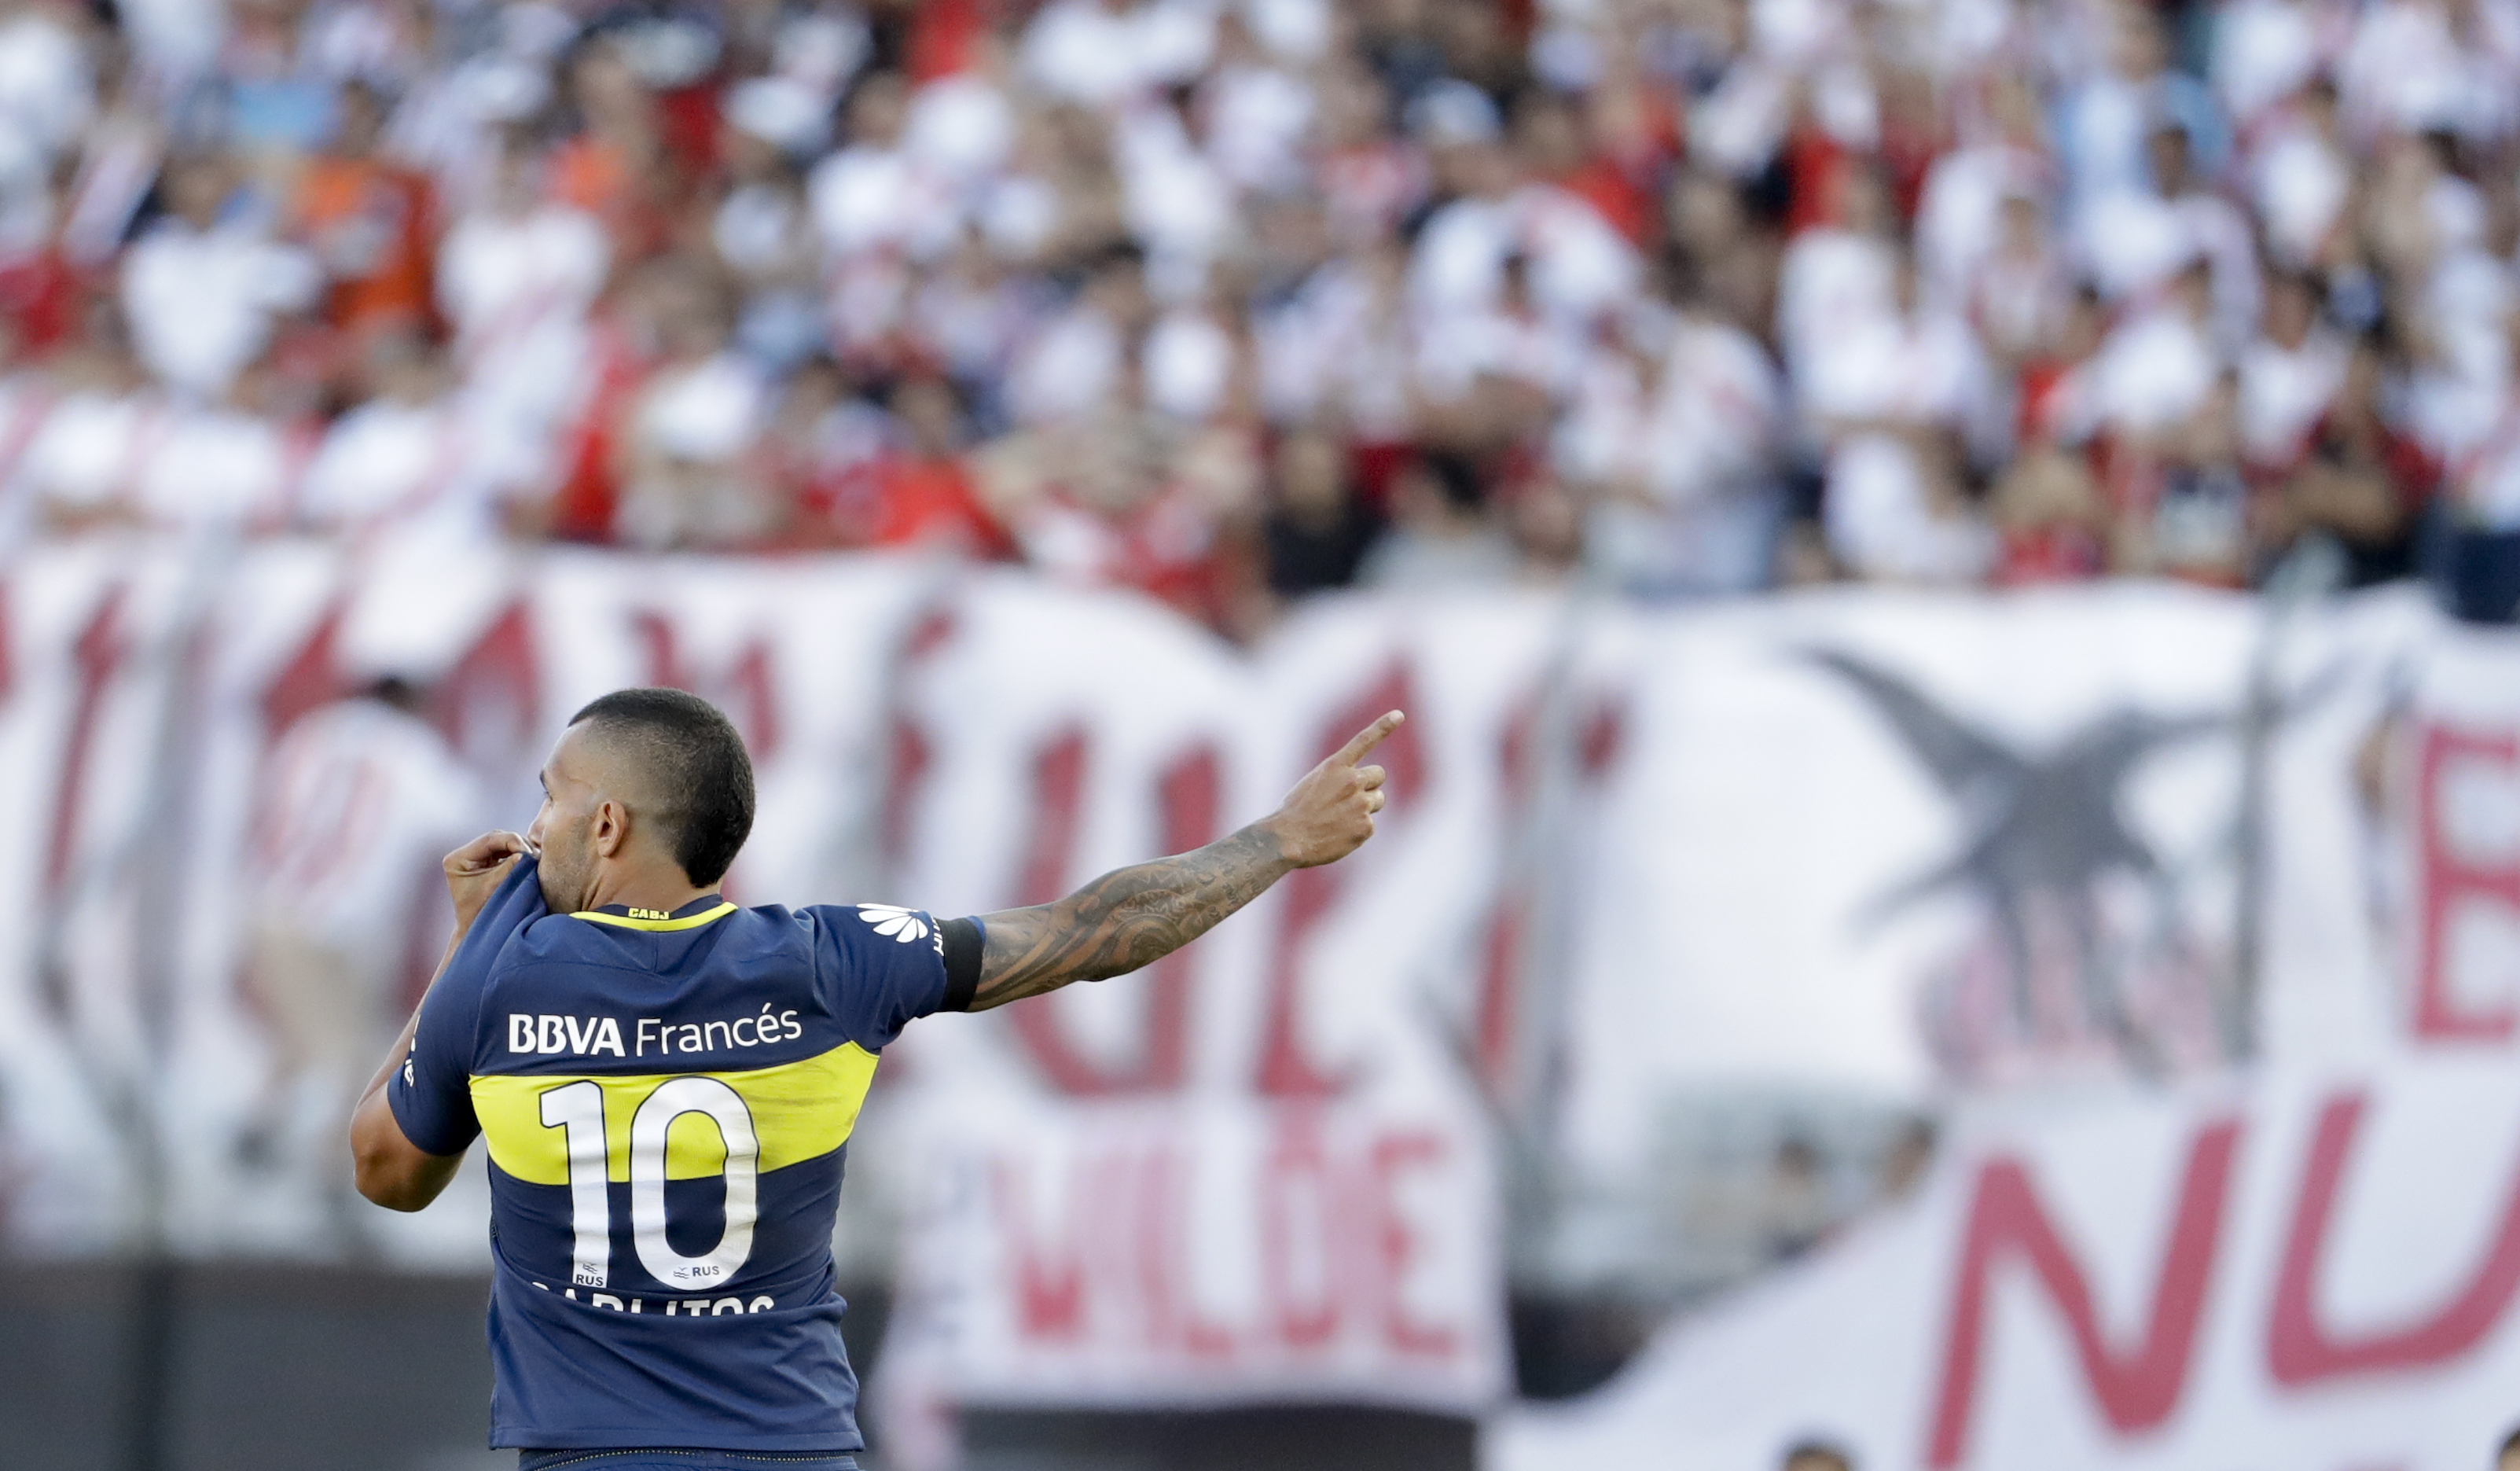 Carlos Tevez rejoins Boca Juniors for third stint